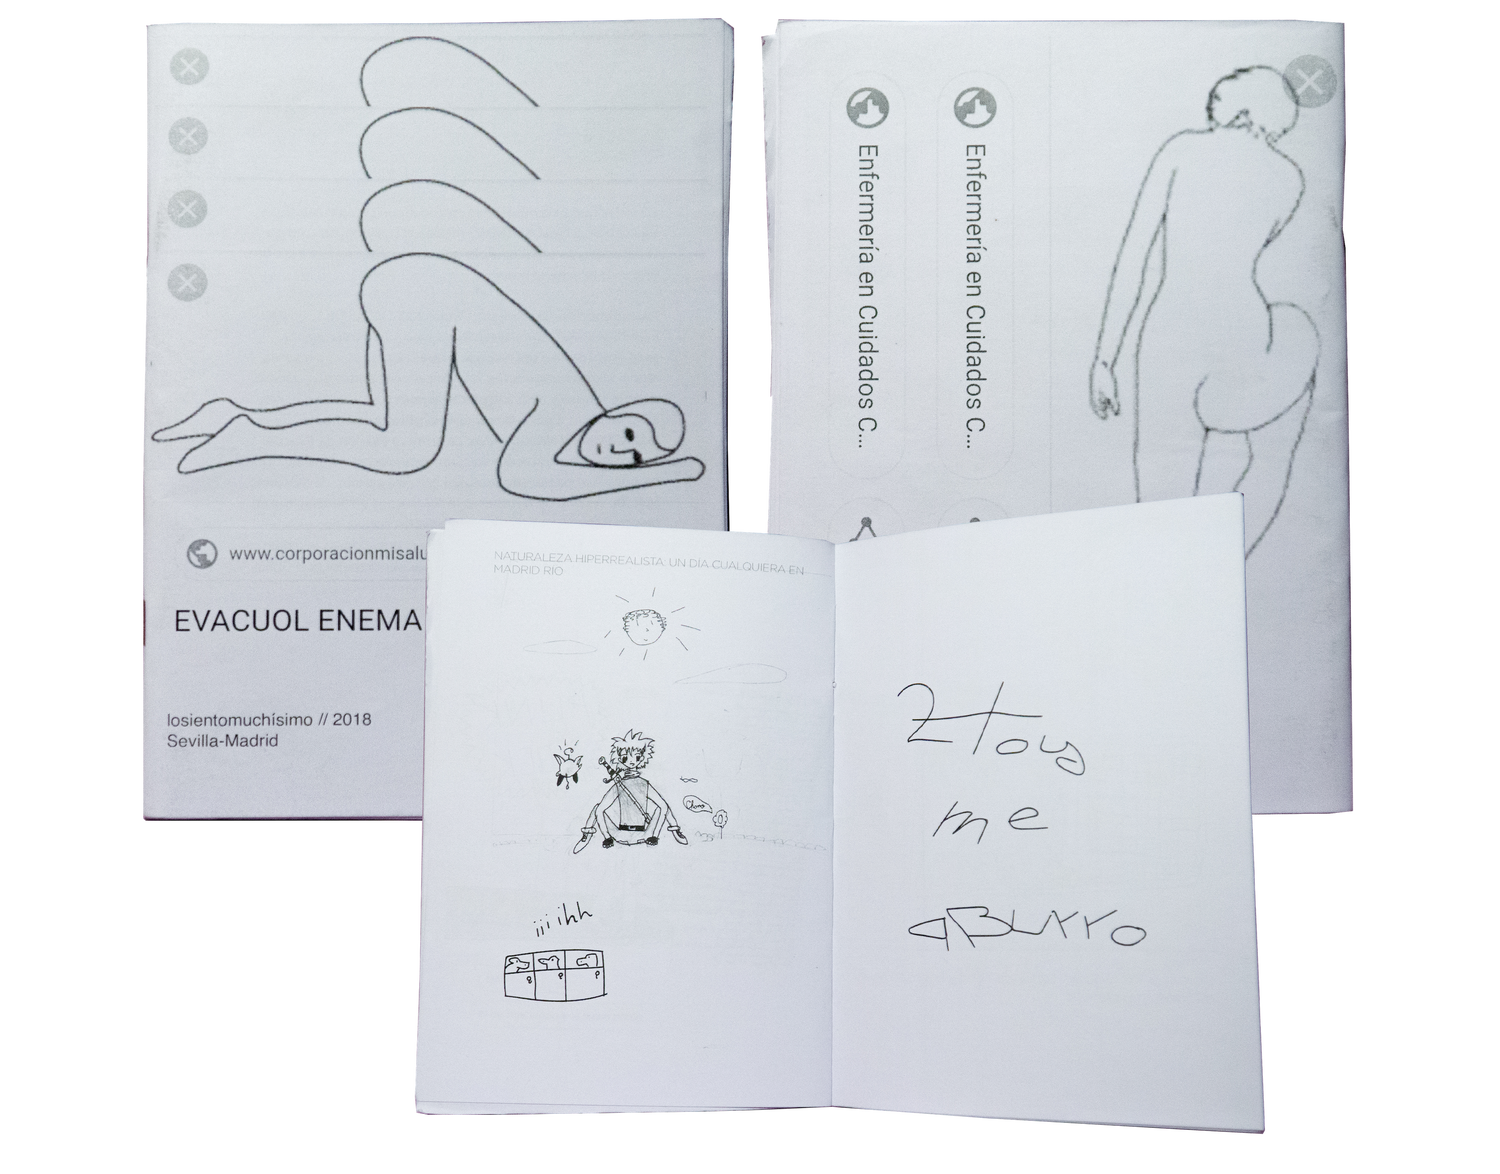 Image of Evacuol Enema